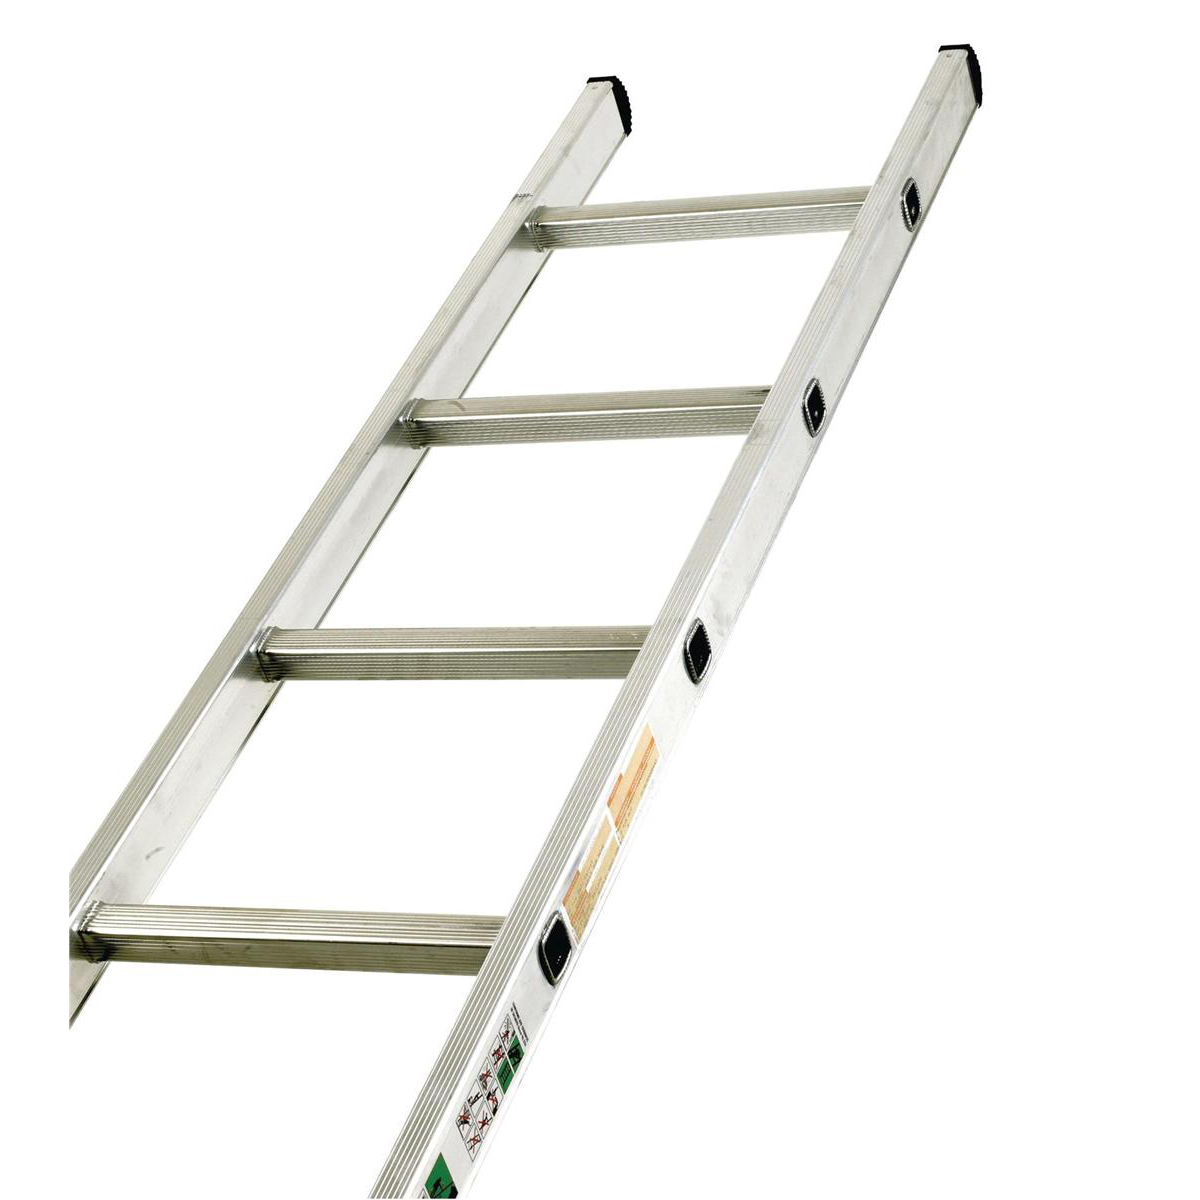 Ladders Aluminium Ladder Single Section 16 Rungs Capacity 150kg